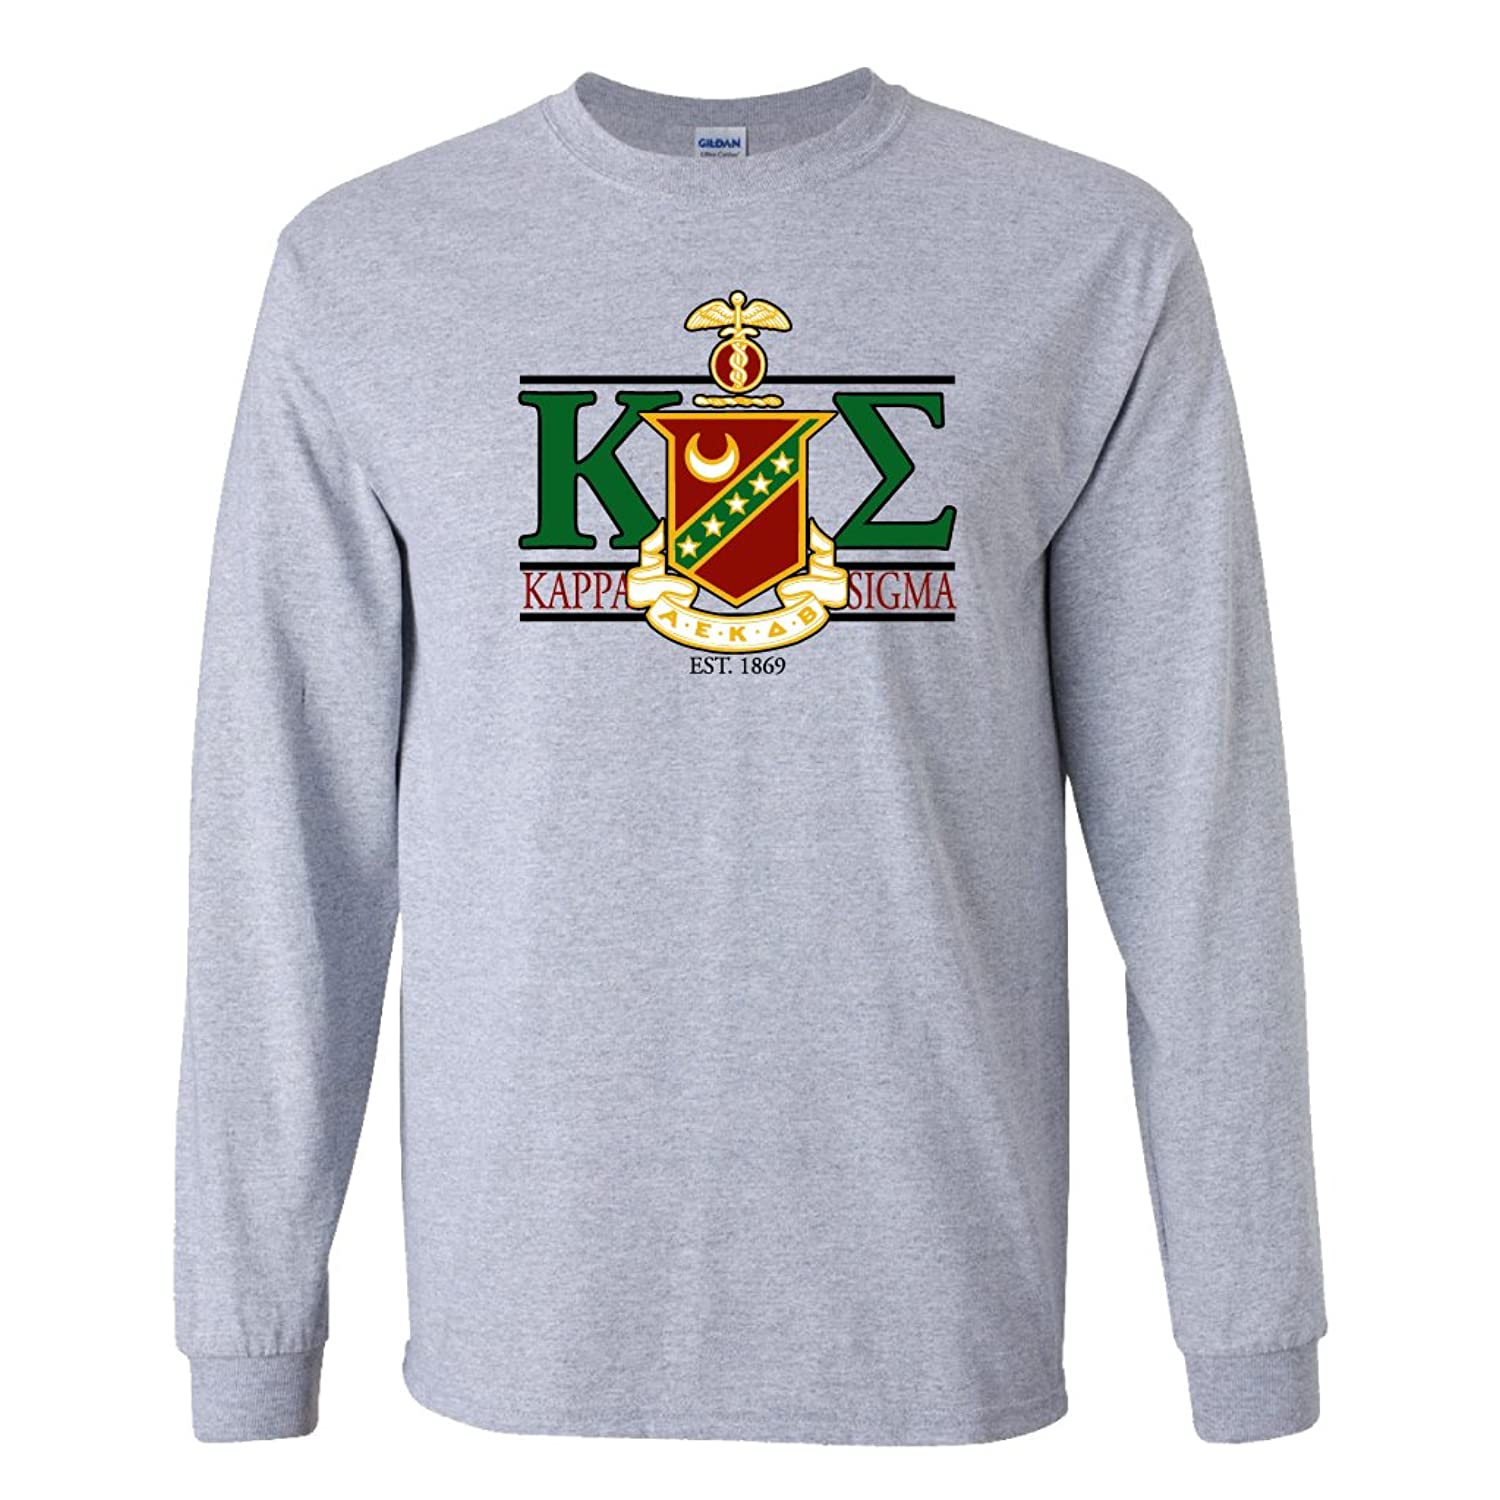 Design t shirt long sleeve - Amazon Com Kappa Sigma Long Sleeve T Shirt Greek Letters With Large Crest Design Large Sport Gray Clothing